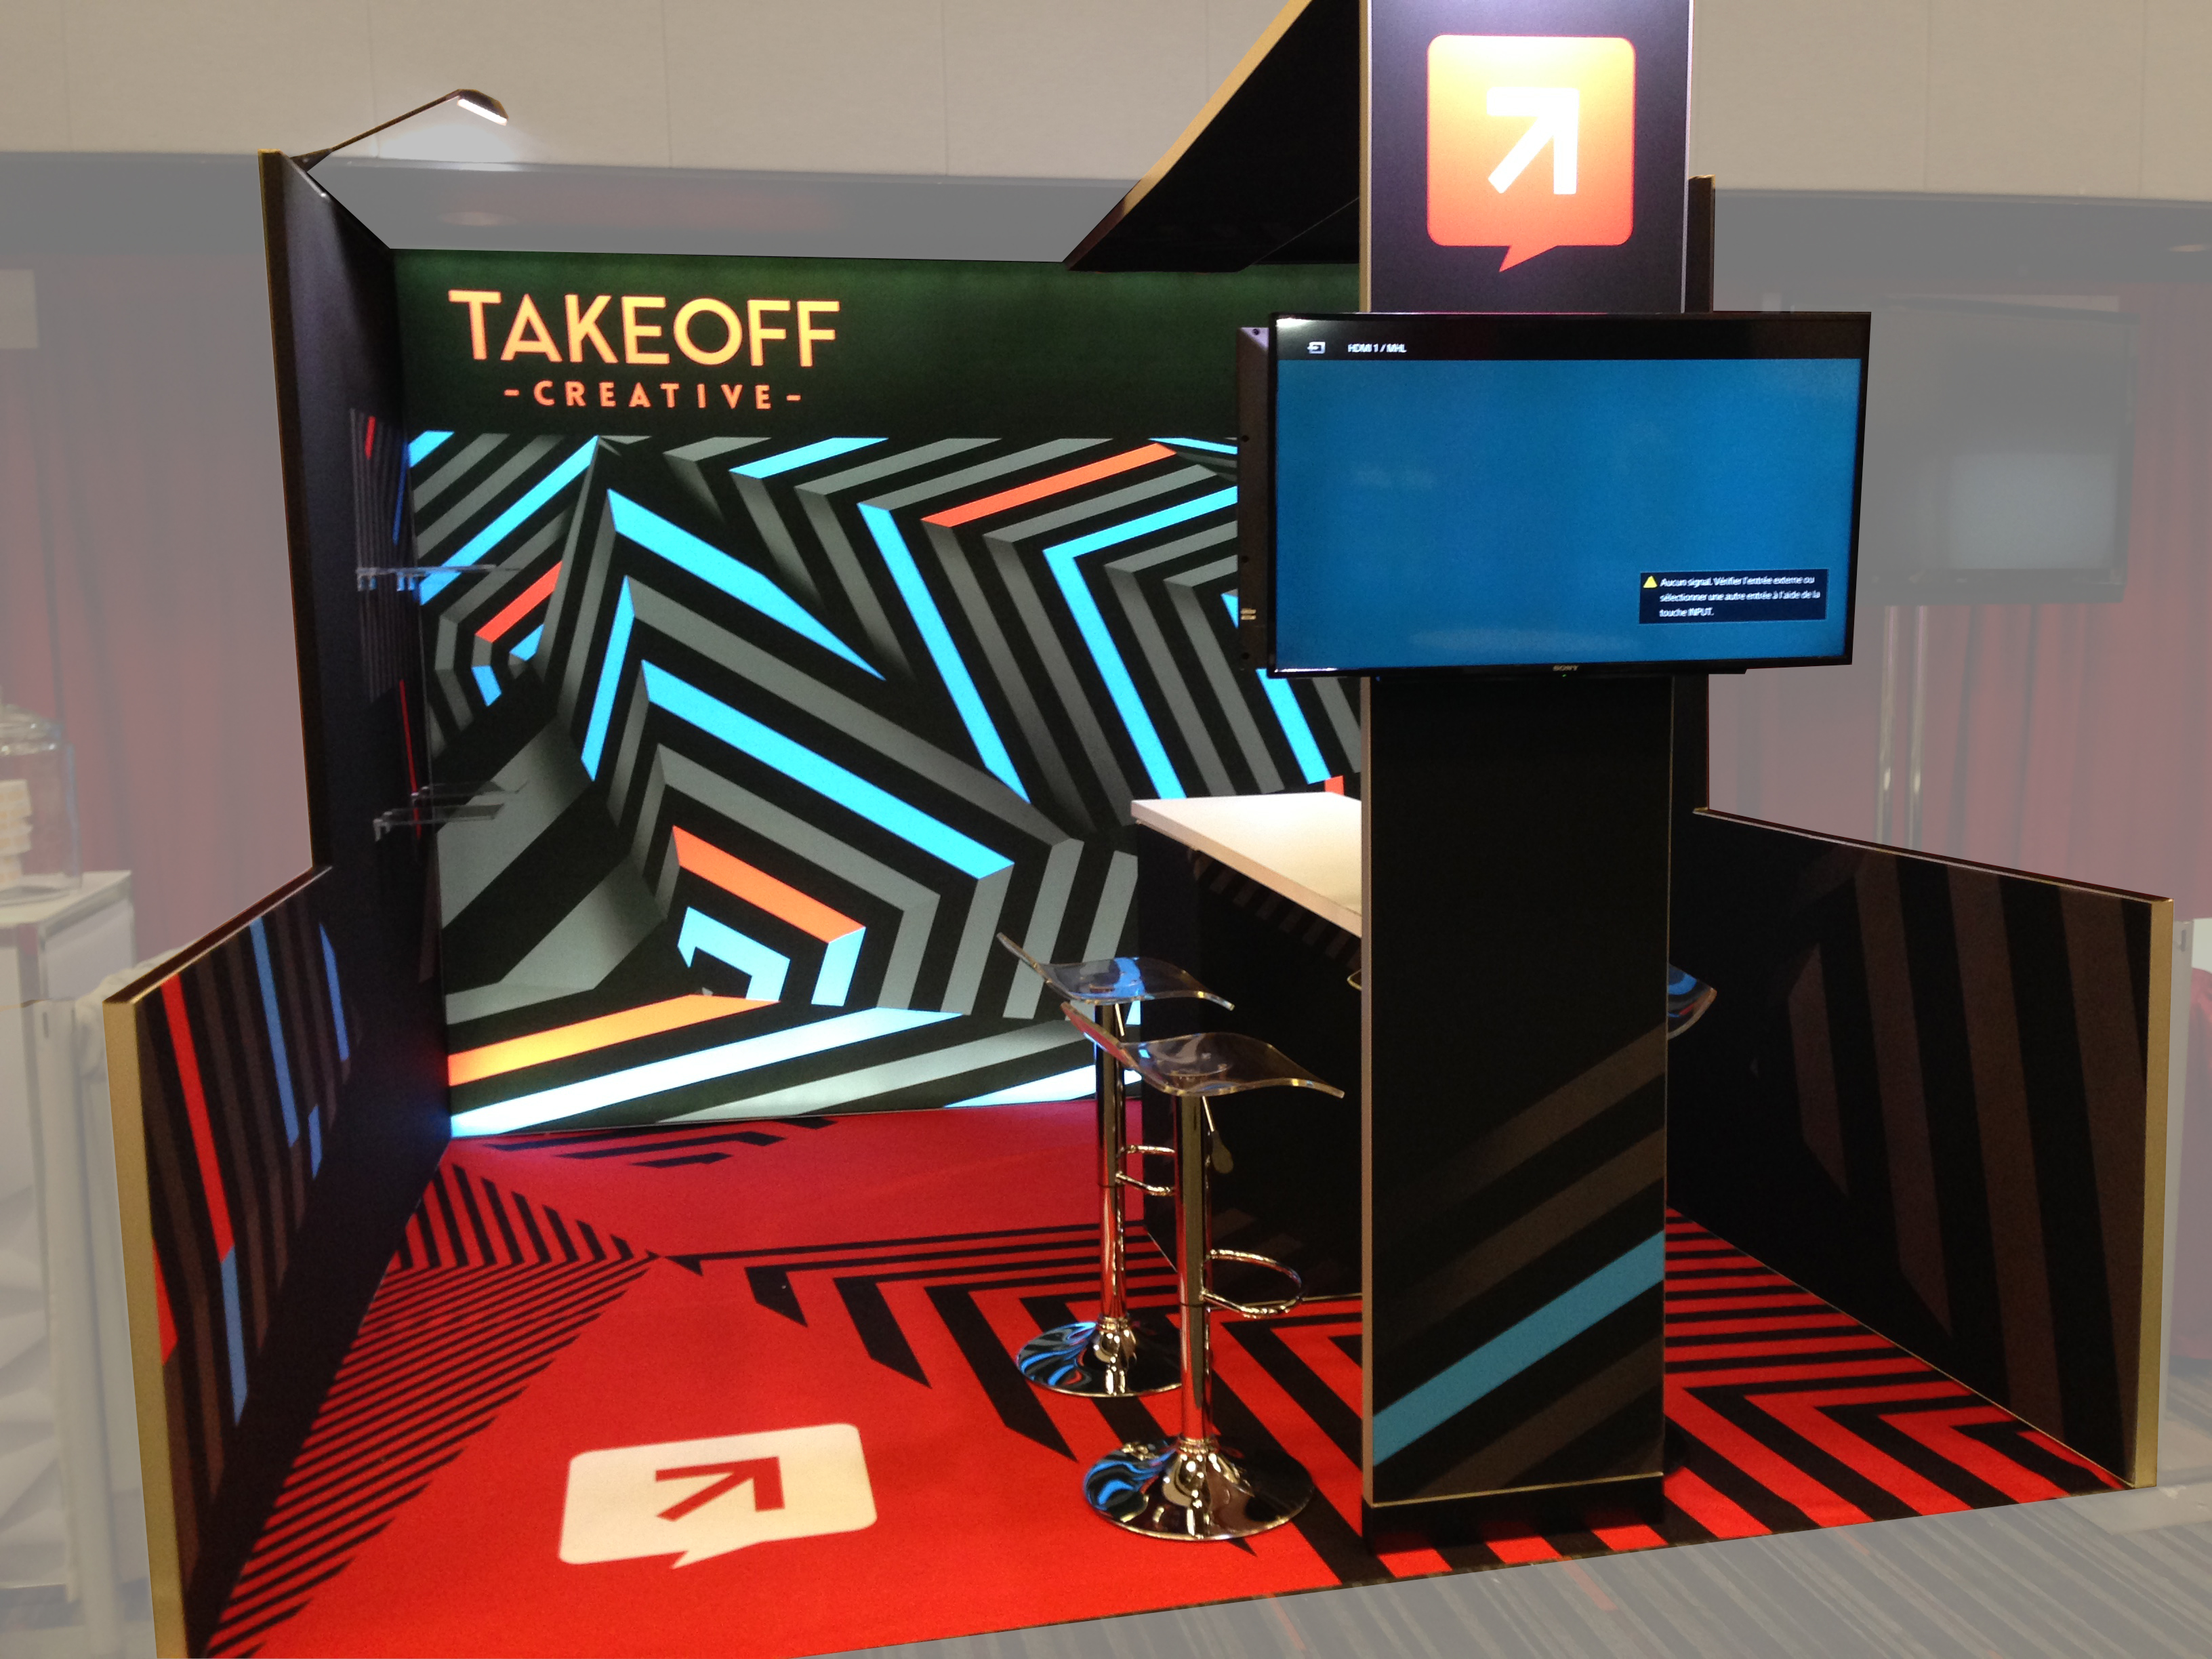 Kiosque TAKEOFF CREATIVE